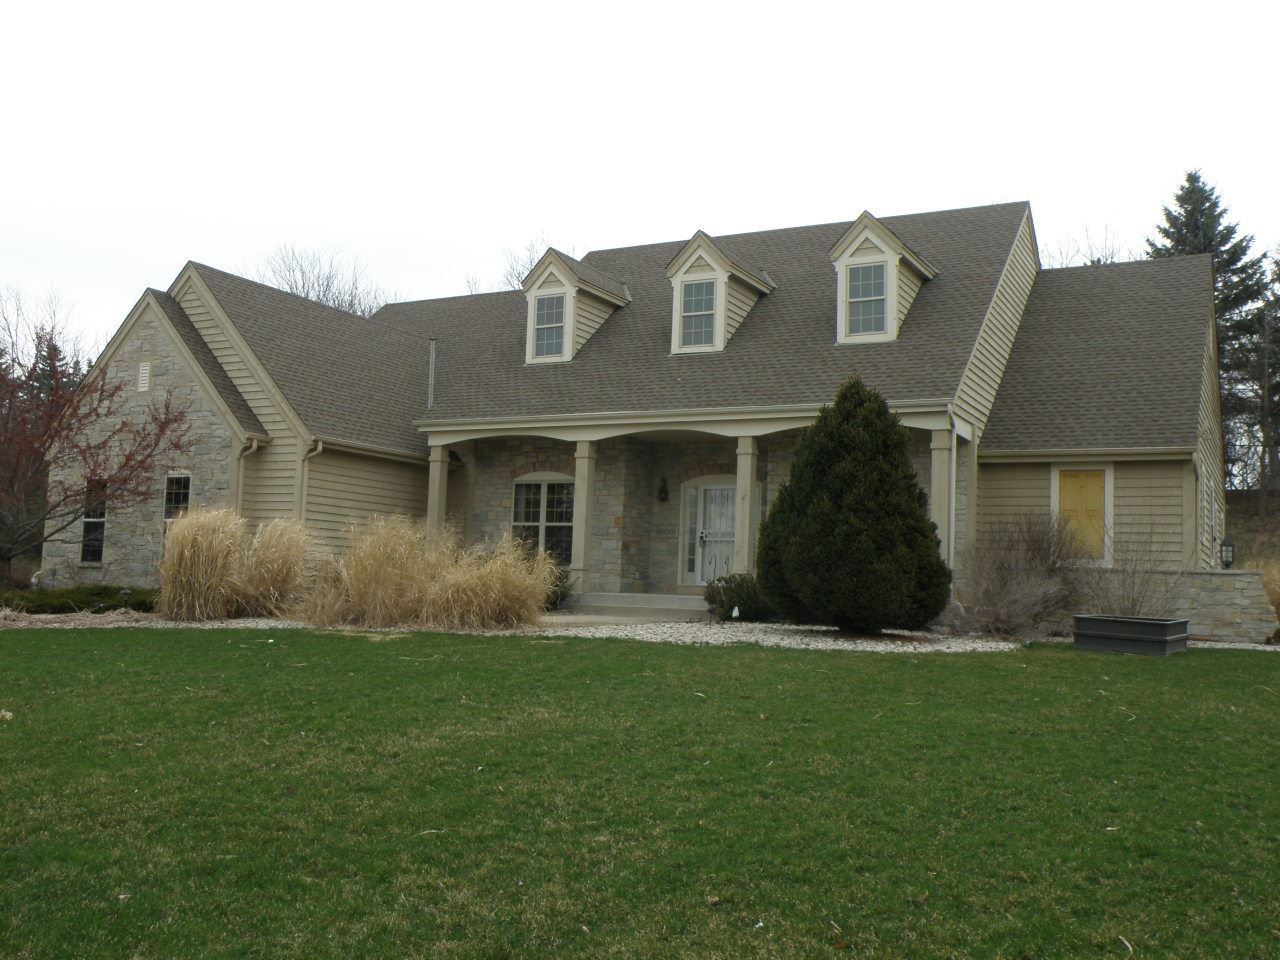 18850 Chimney Rock Ct, Brookfield, WI 53045 - #: 1674716